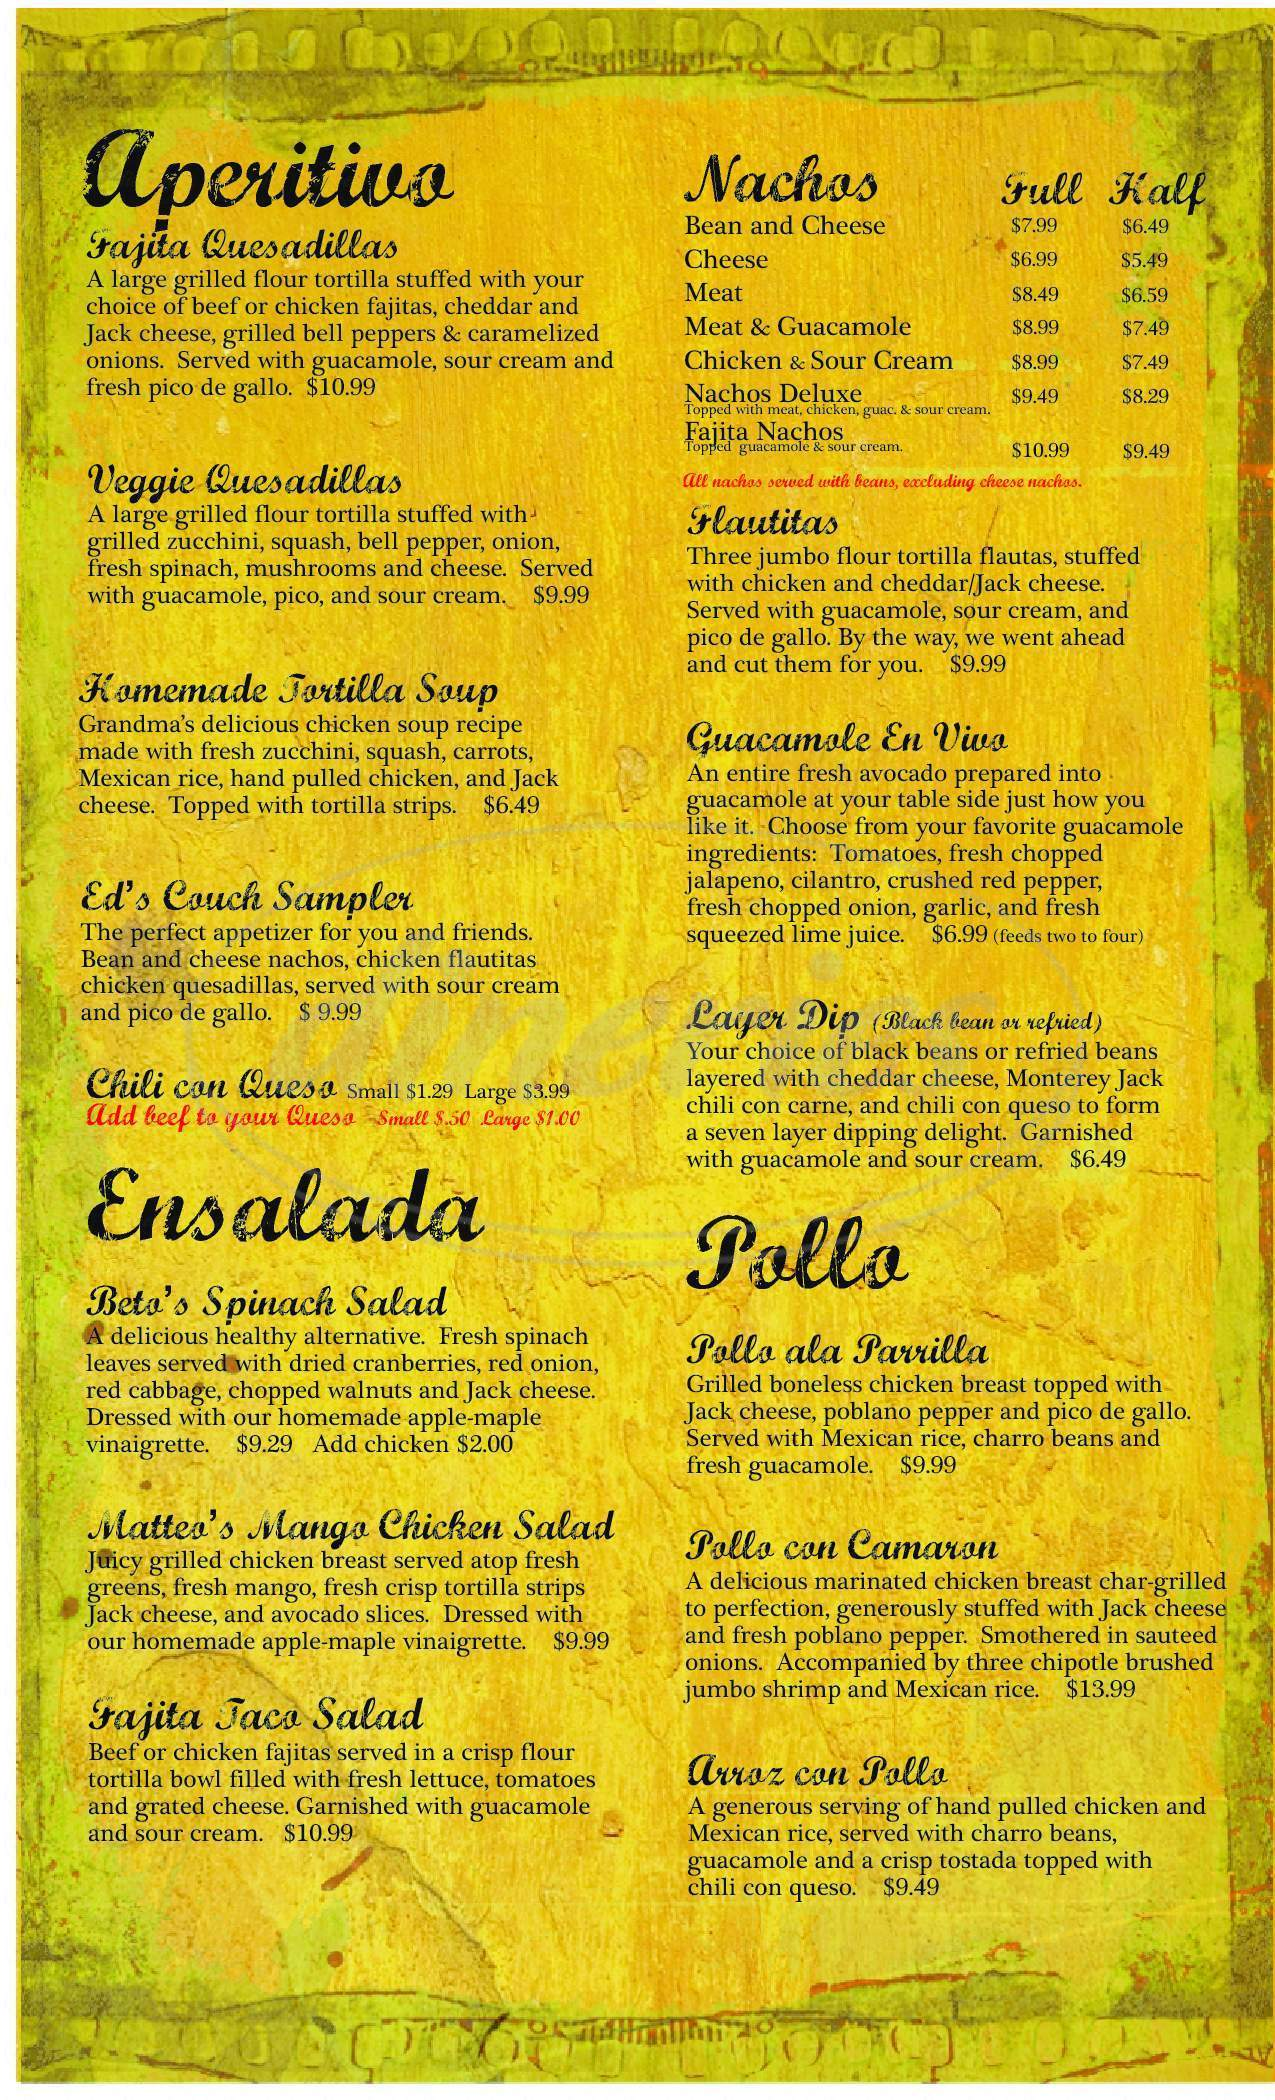 menu for Beto's Mexican Restaurant